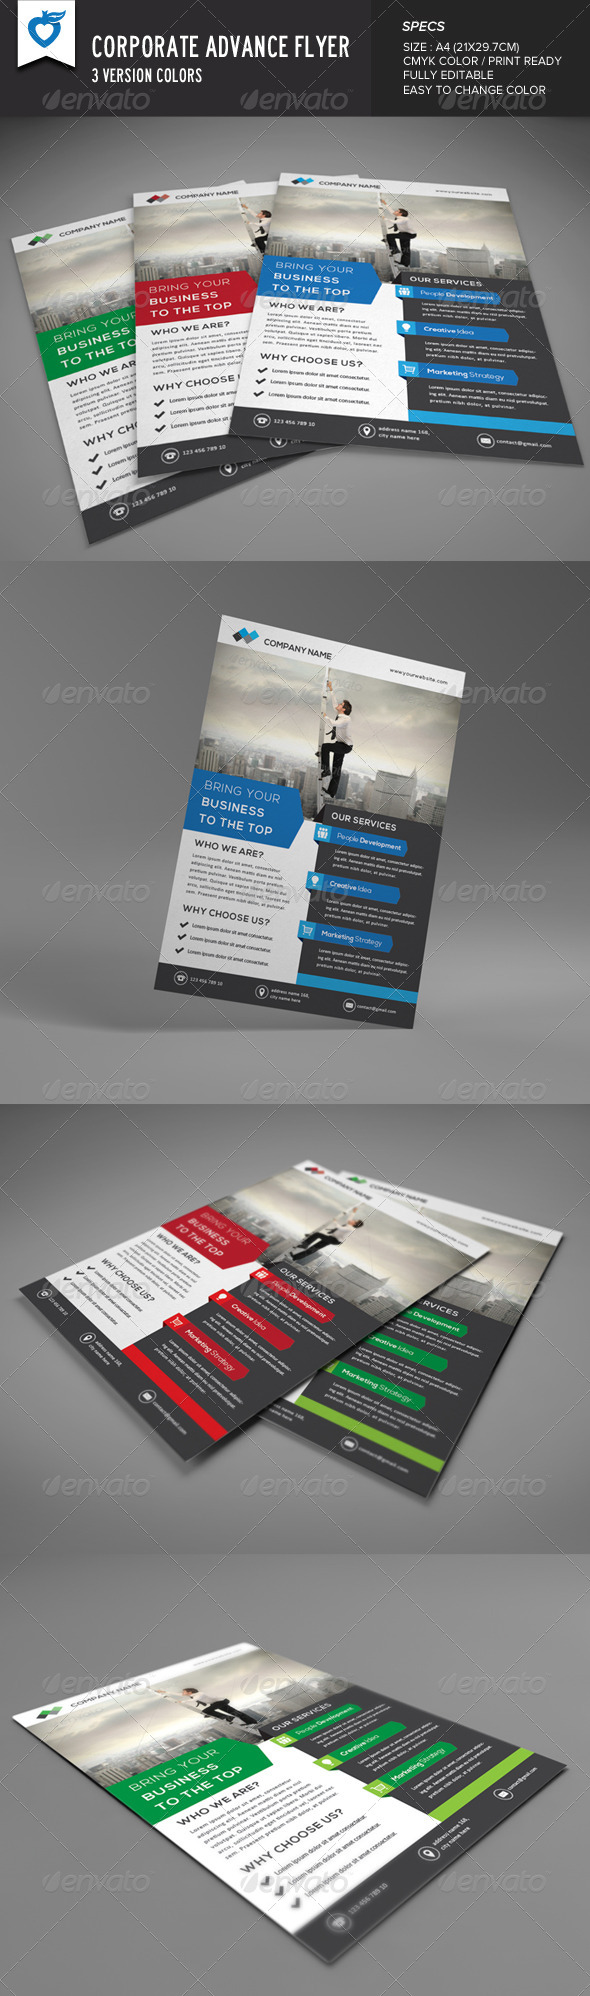 GraphicRiver Corporate Advance Flyer 8654497